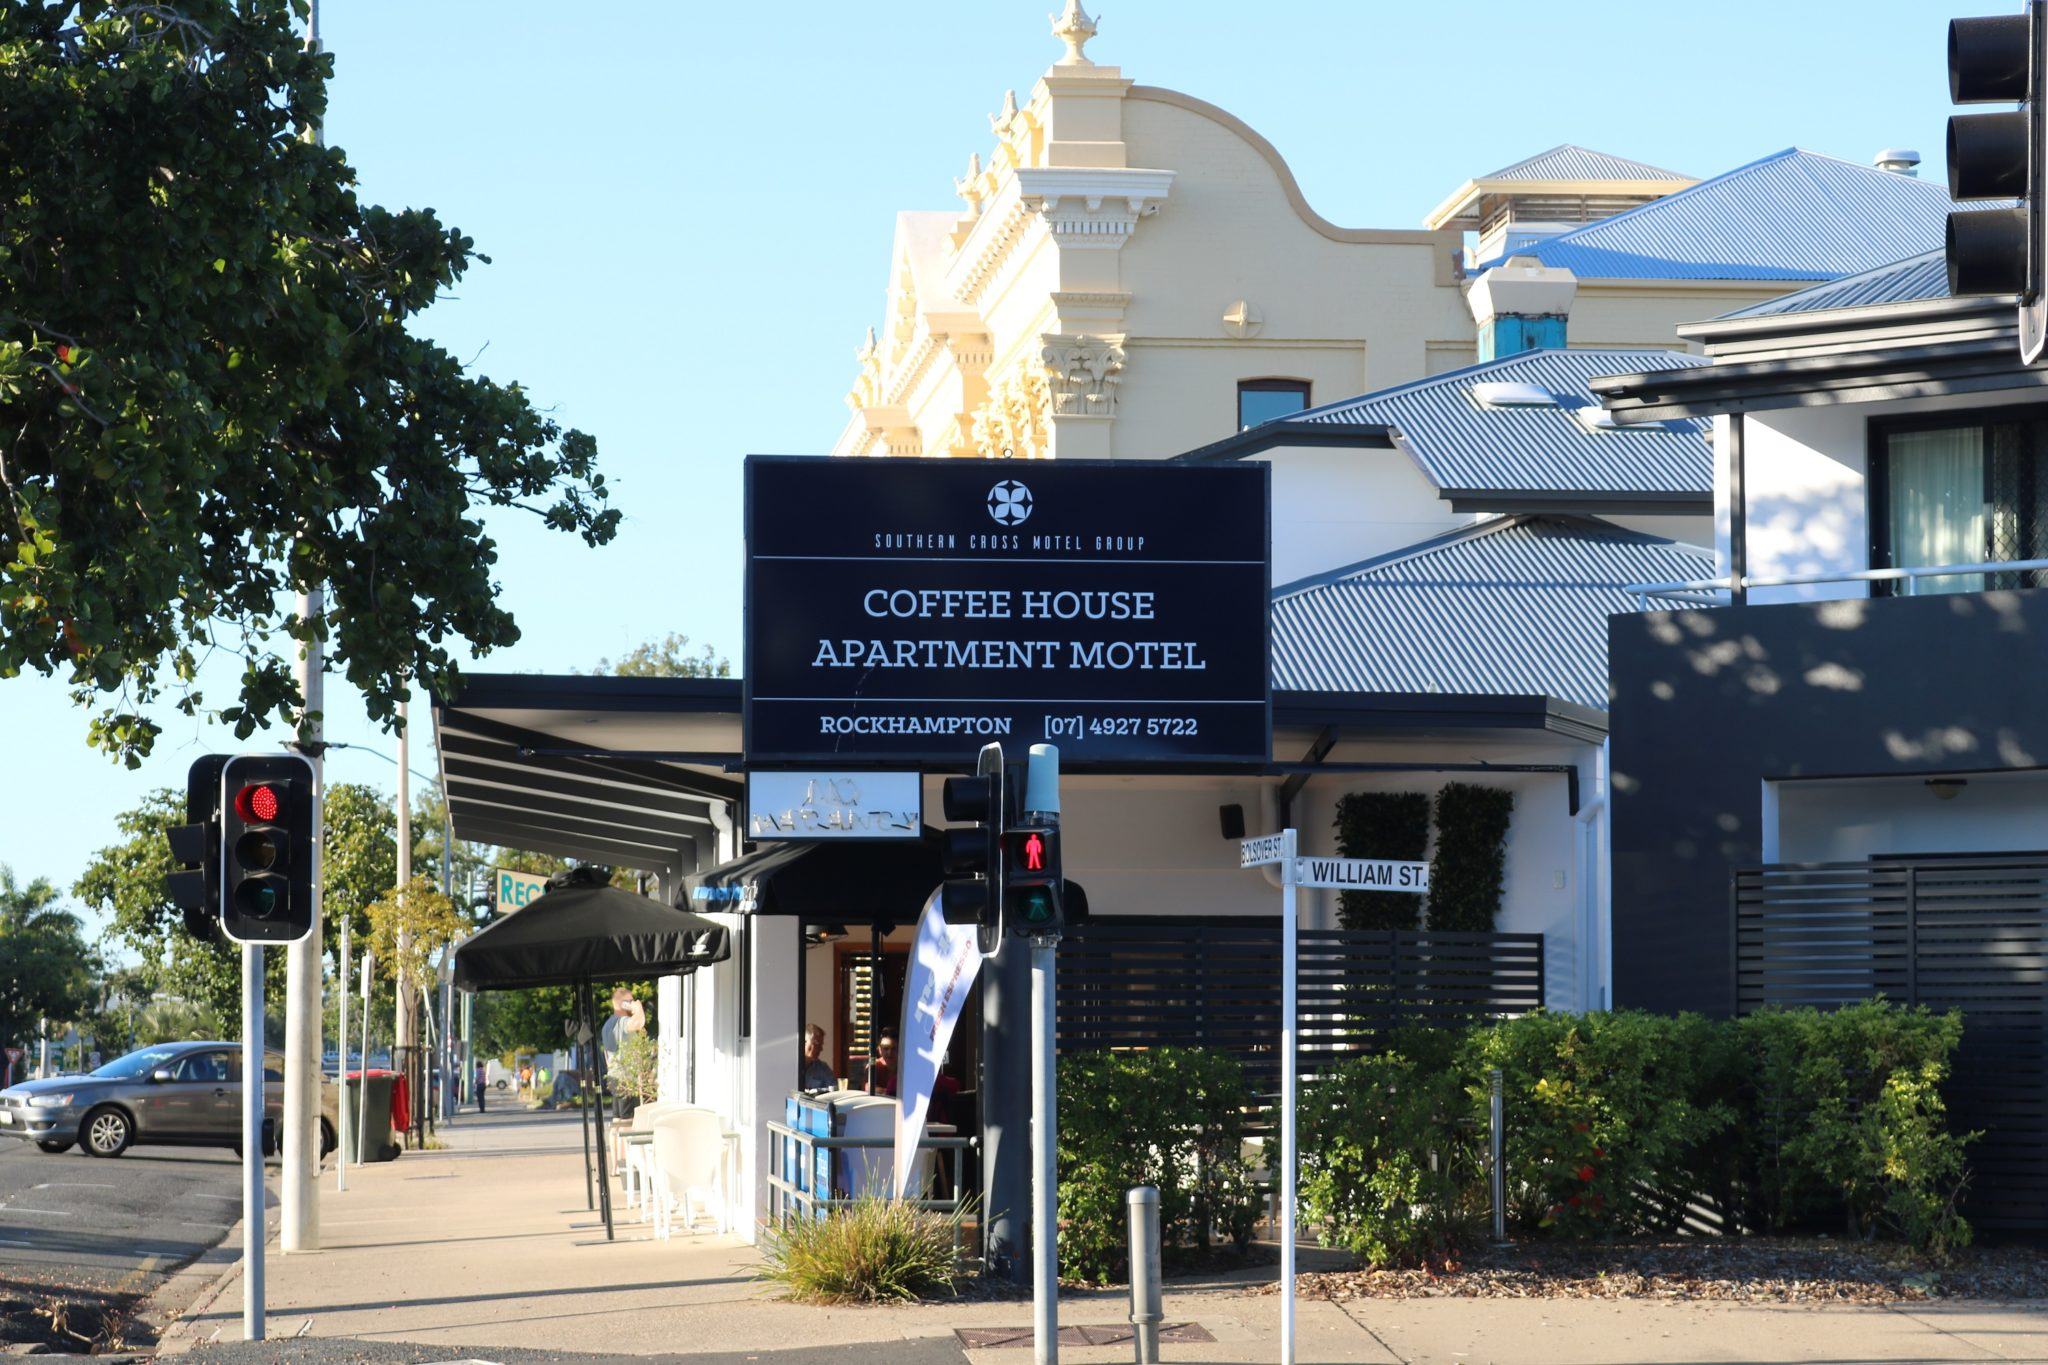 Coffee House Apartment motel in Rockhampton is just on the corner of Bolsover Street and William Street